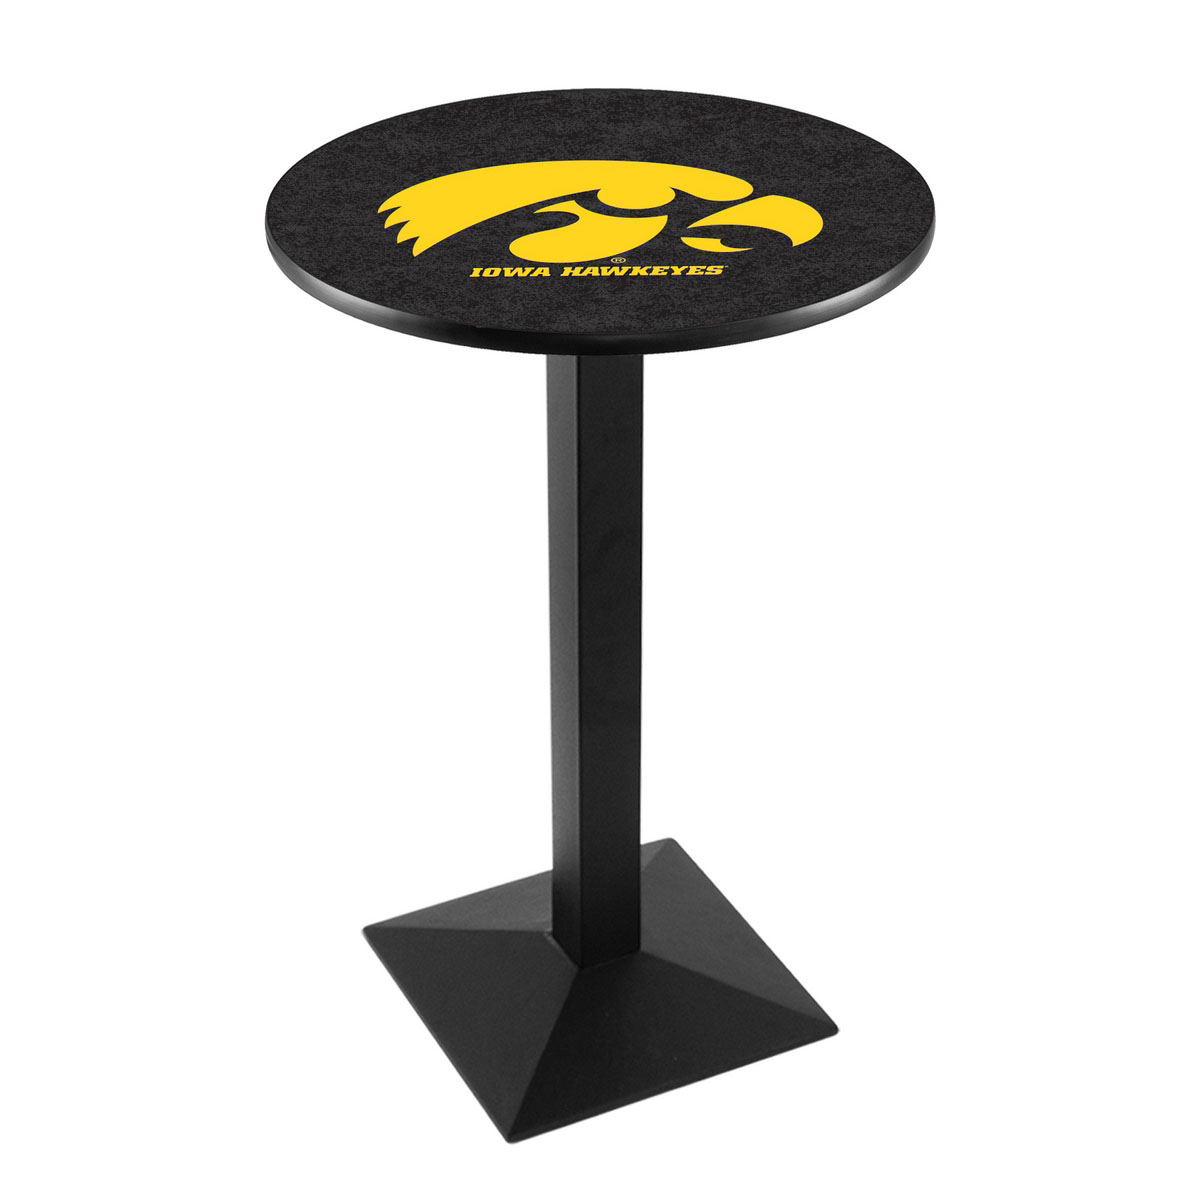 Check out the University Iowa Logo Pub Bar Table Square Stand Product Photo